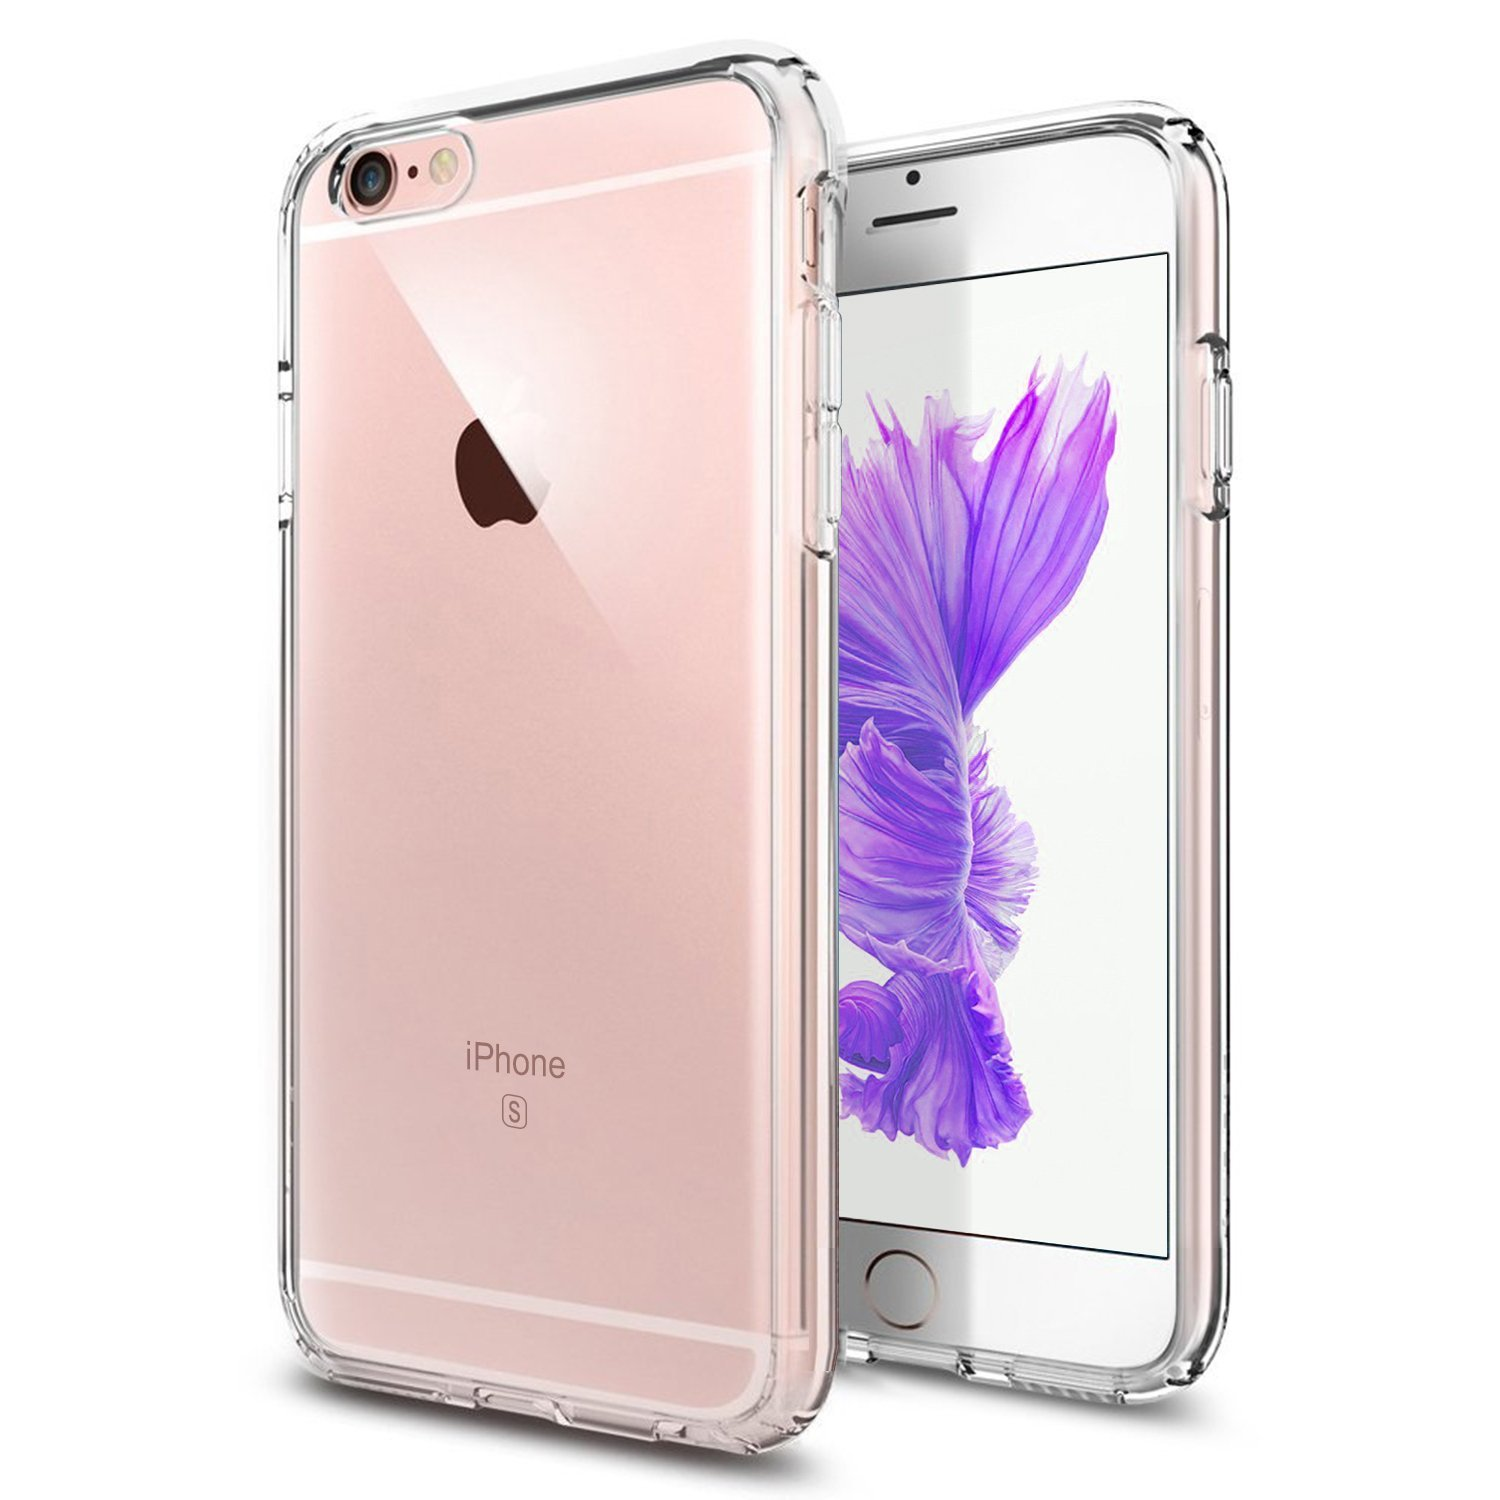 TENOC Case Compatible for Apple iPhone 6 and iPhone 6S 4.7 Inch, Crystal Clear Soft TPU Cover Full Protective Bumper by TENOC (Image #1)